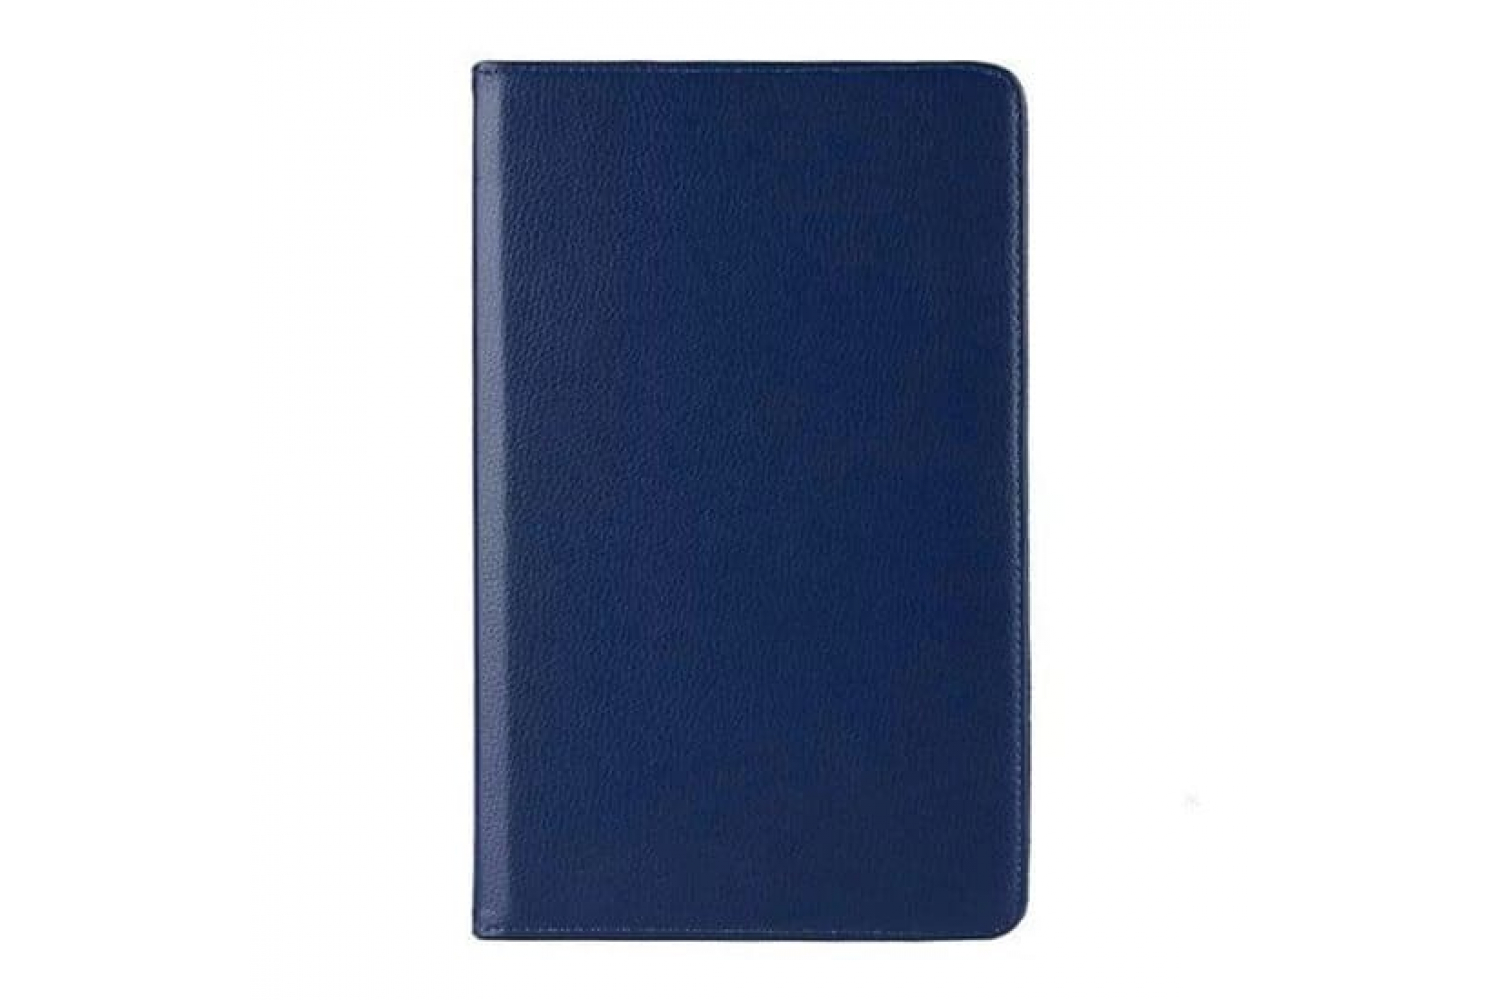 Samsung Tab A 10.1 PU leren Draaibare hoes blauw T580 T585